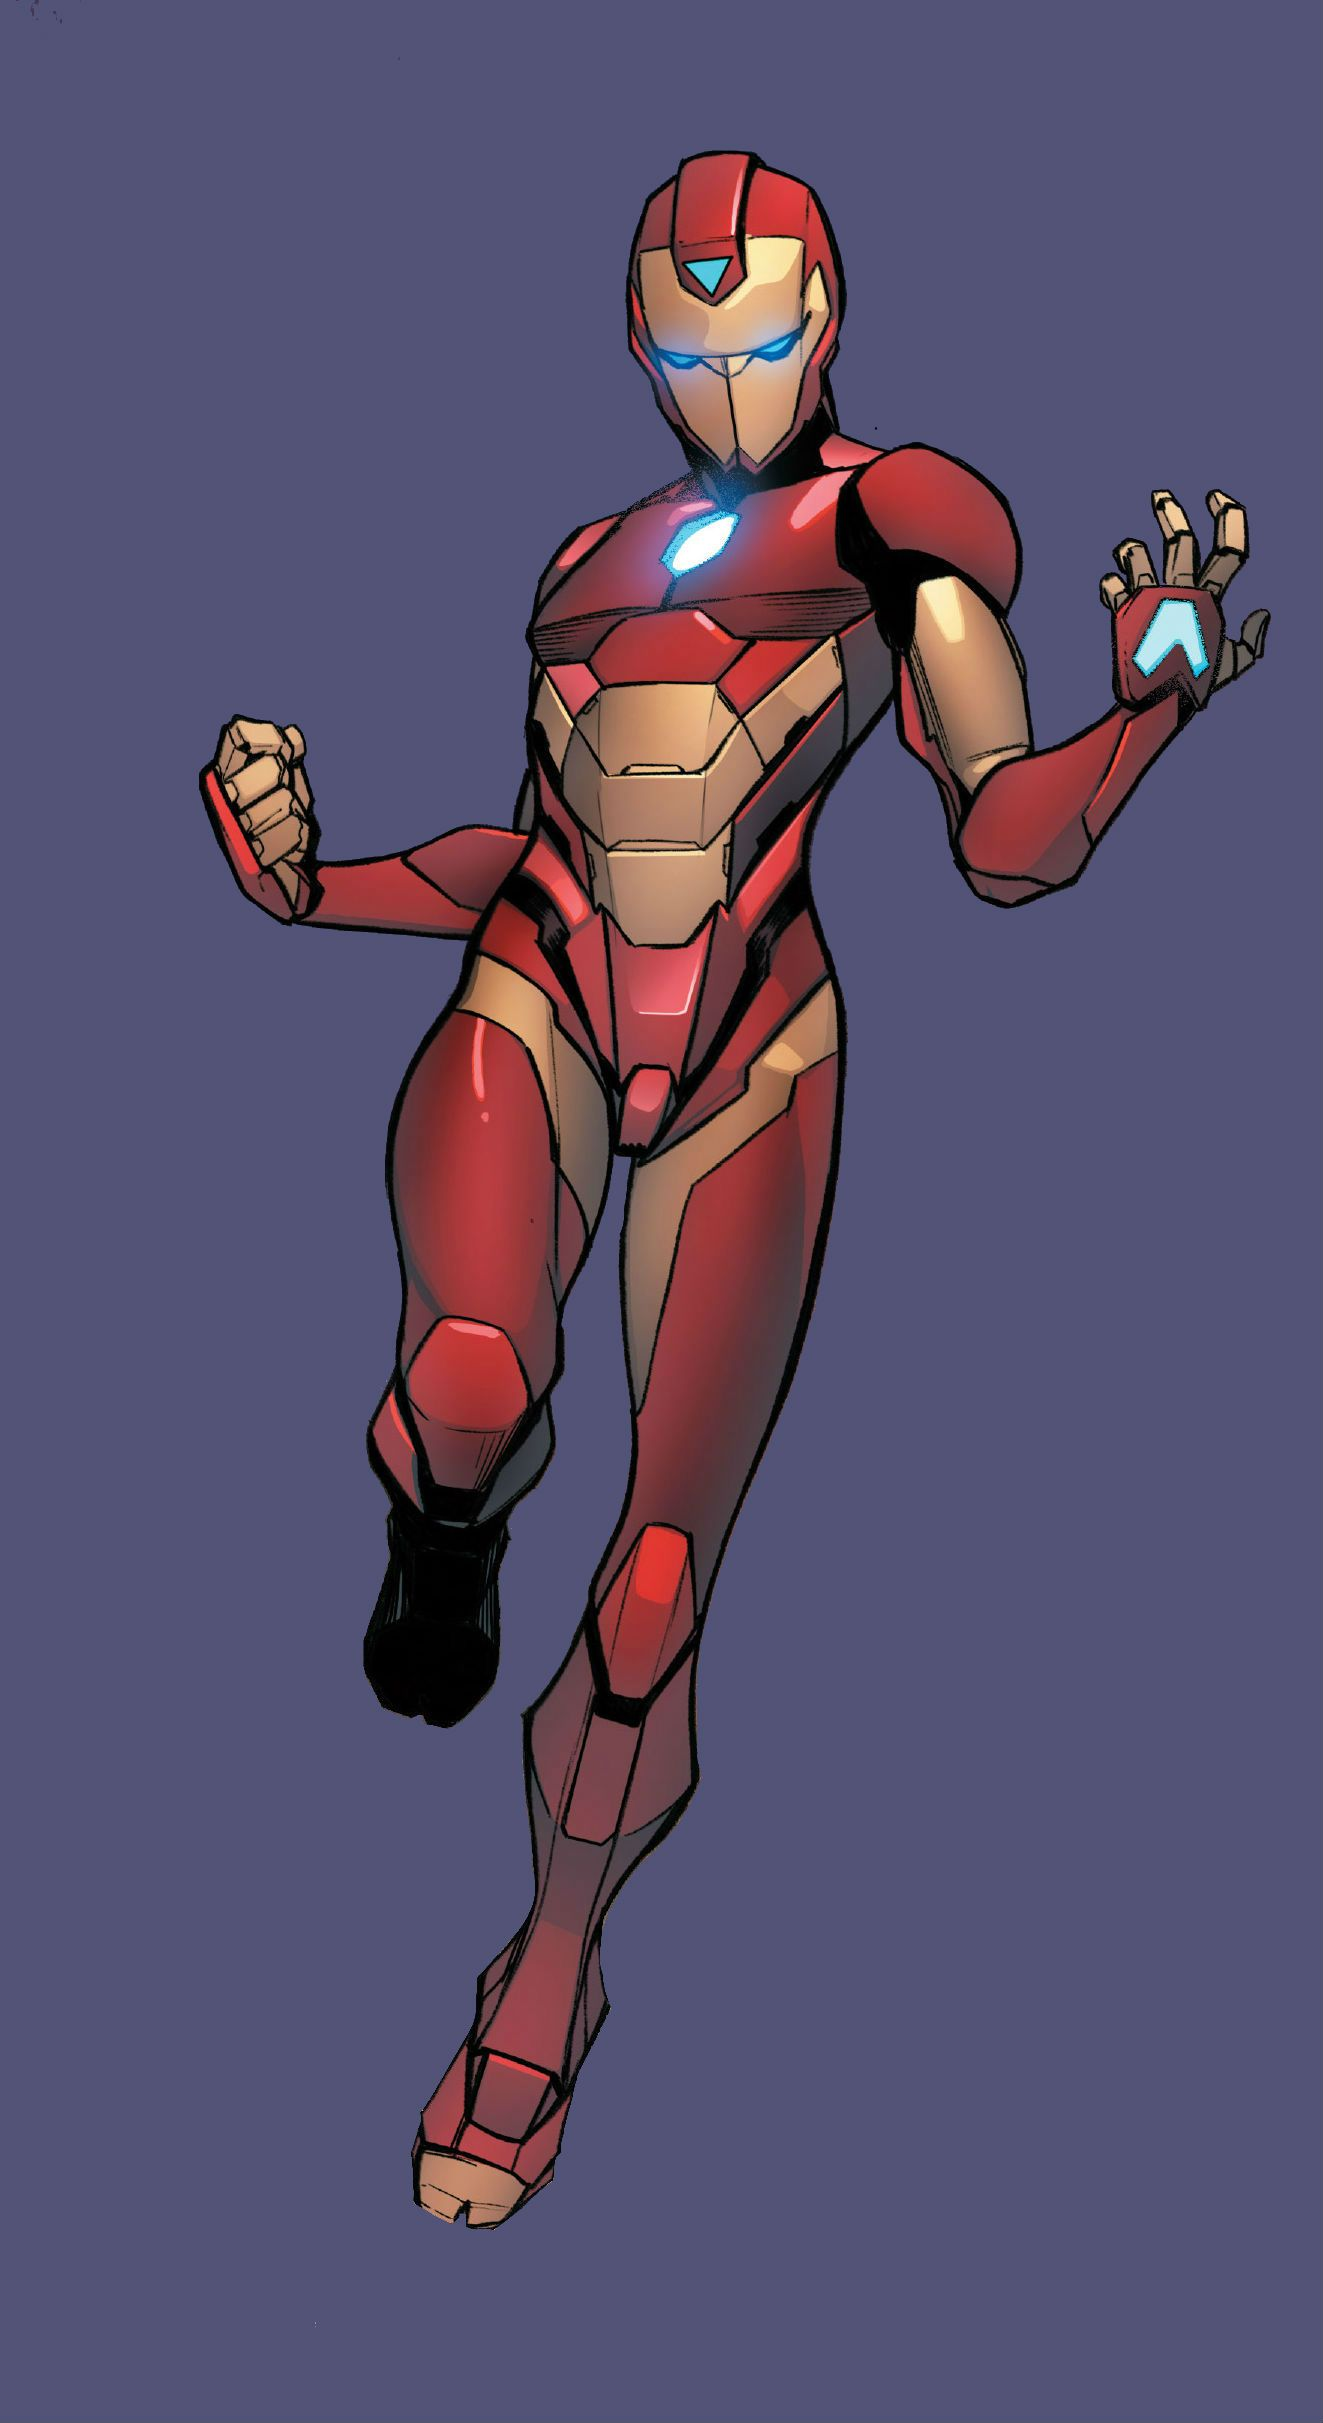 6cddf3a3a9 Ironheart Armor Model 2 (Riri Willians) by STEFANO CASELLI Superhero  Characters